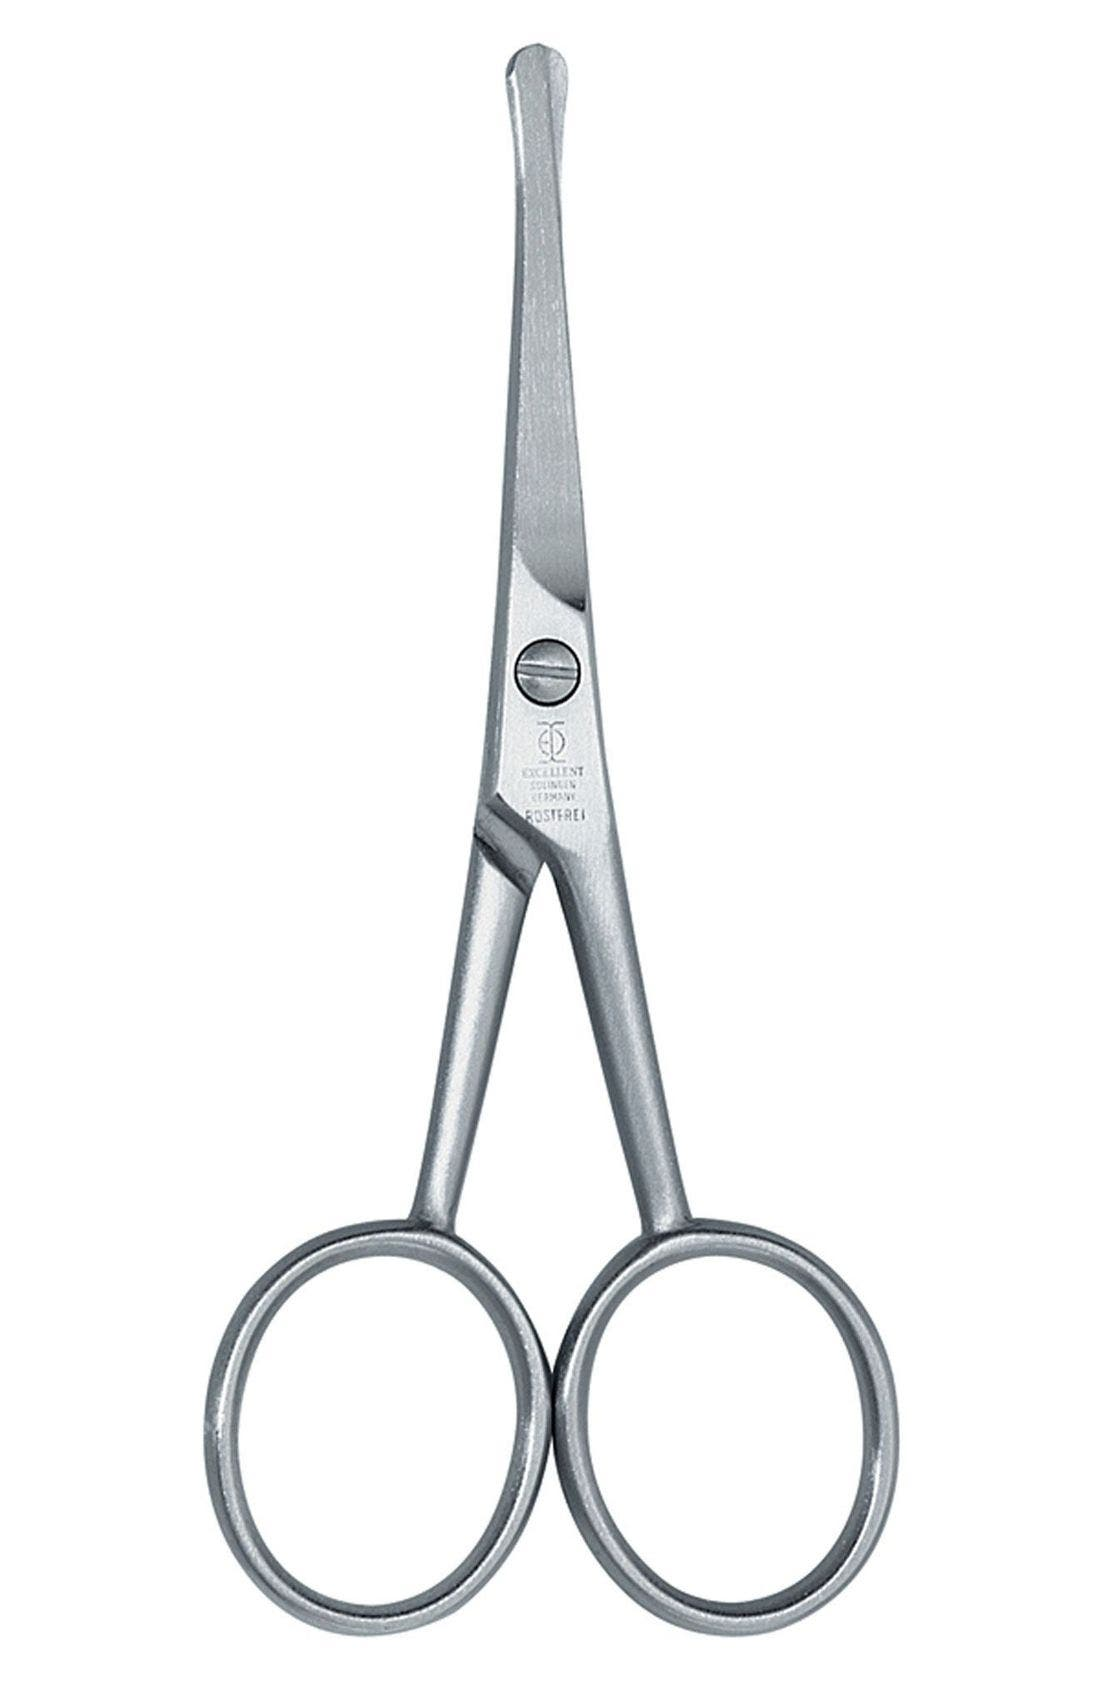 Nose & Ear Hair Scissors,                             Main thumbnail 1, color,                             NO COLOR